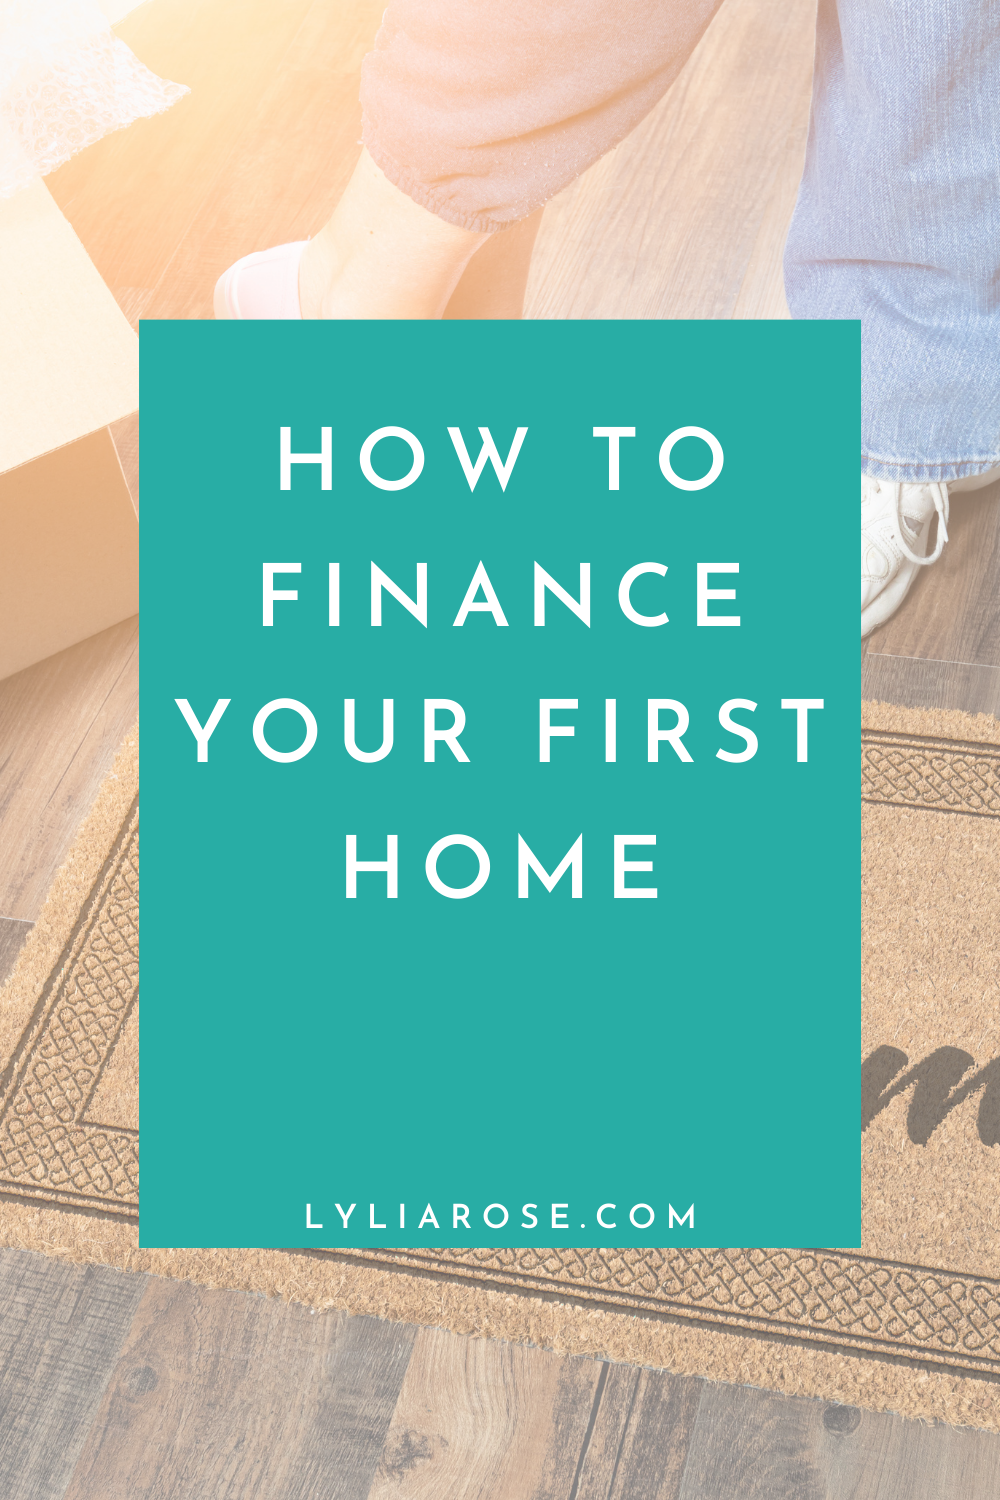 How to finance your first home (1)